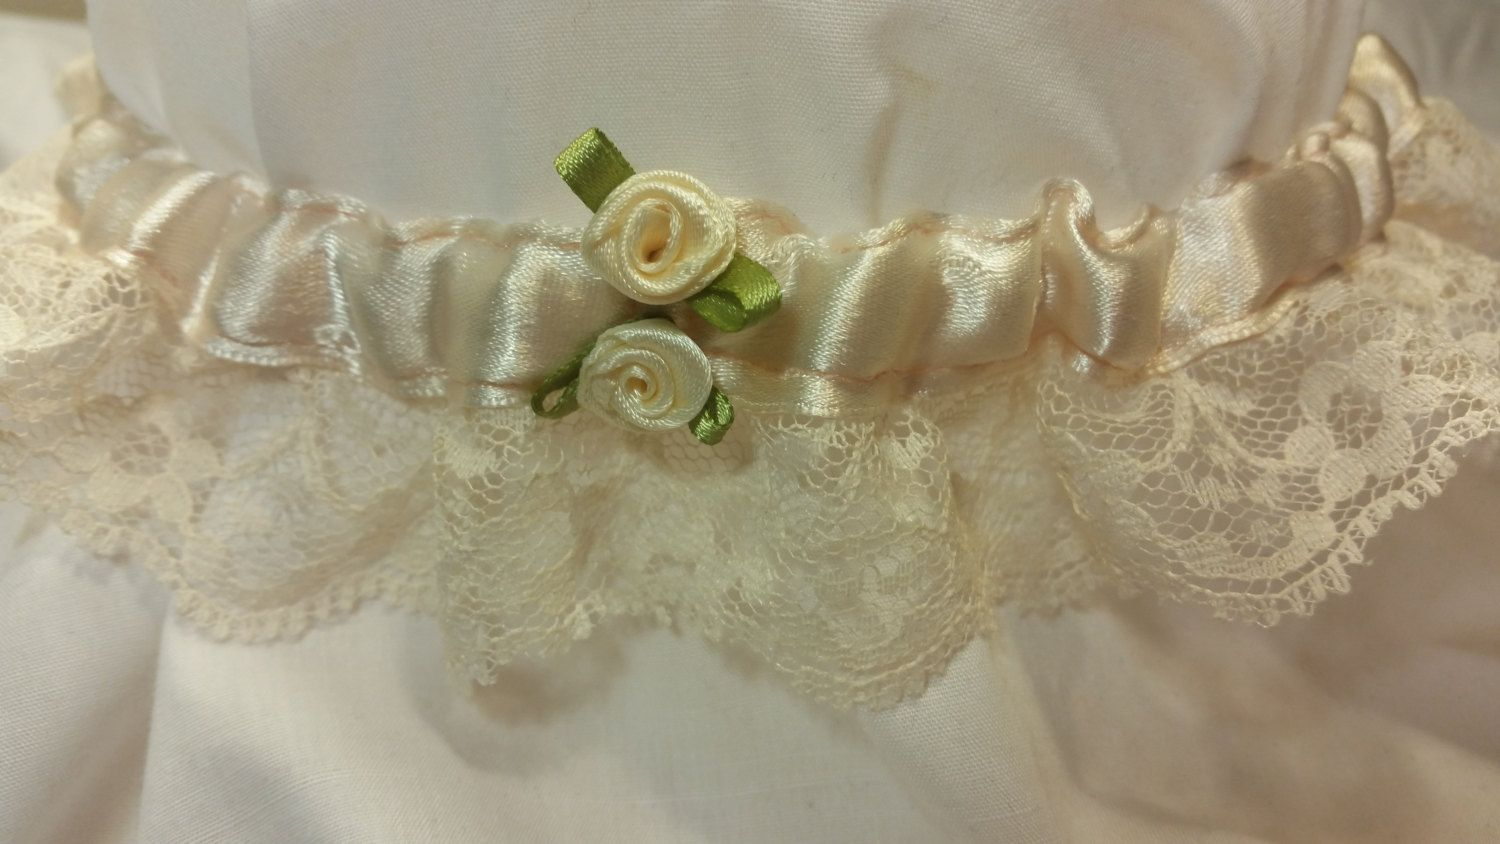 Classic Wedding Garter - Cream Silk Ribbon, Cream Lace, Cream Rosebud Notions with Green Leaves by HemHouse on Etsy